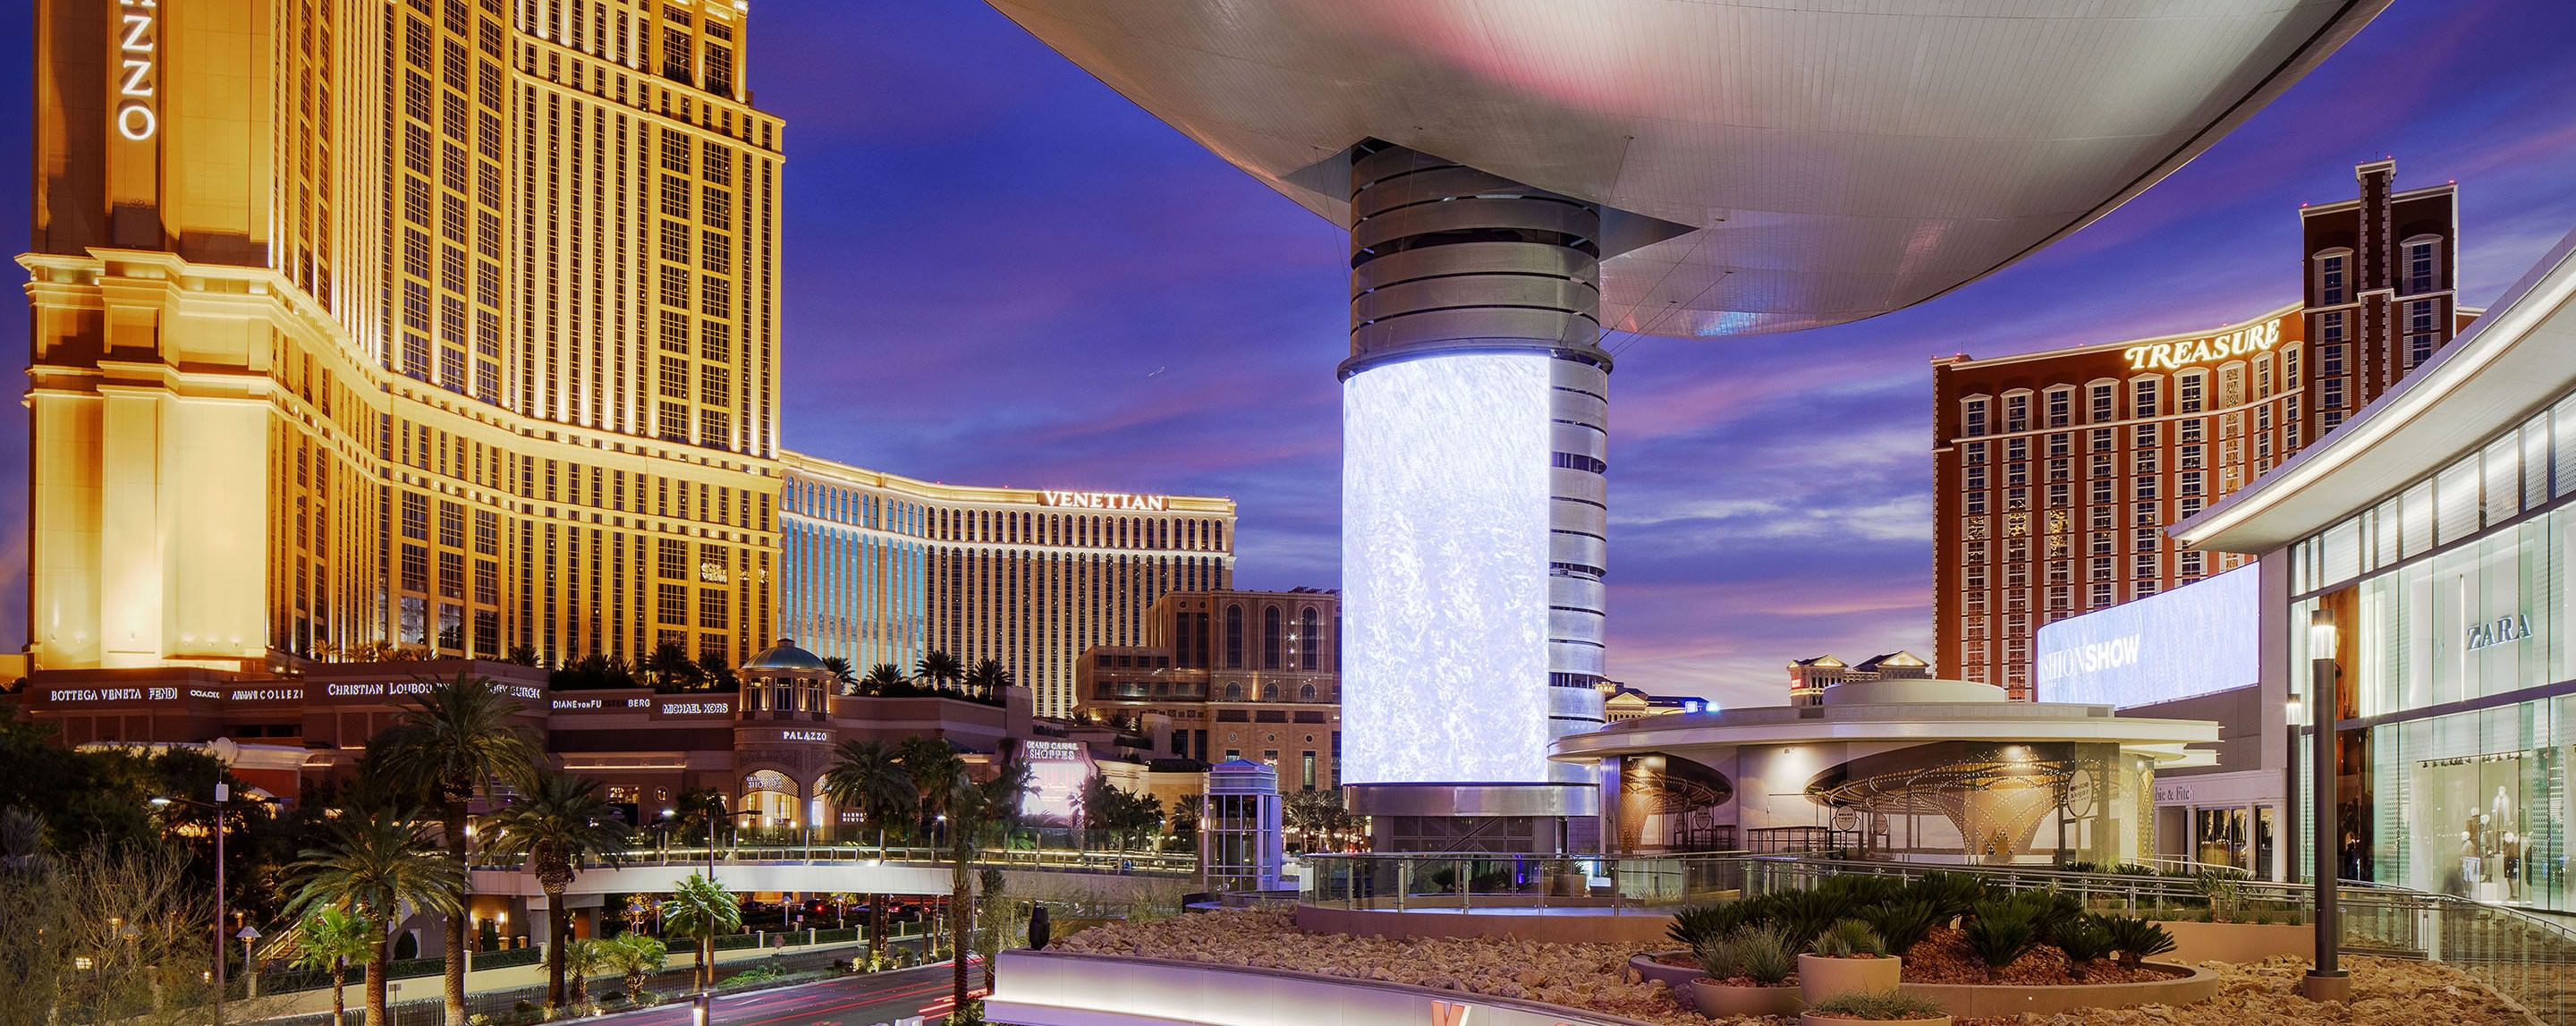 Surrounding Fashion Show Are Lit Up Las Vegas Building And Hotels At Night Decorated With Numerous